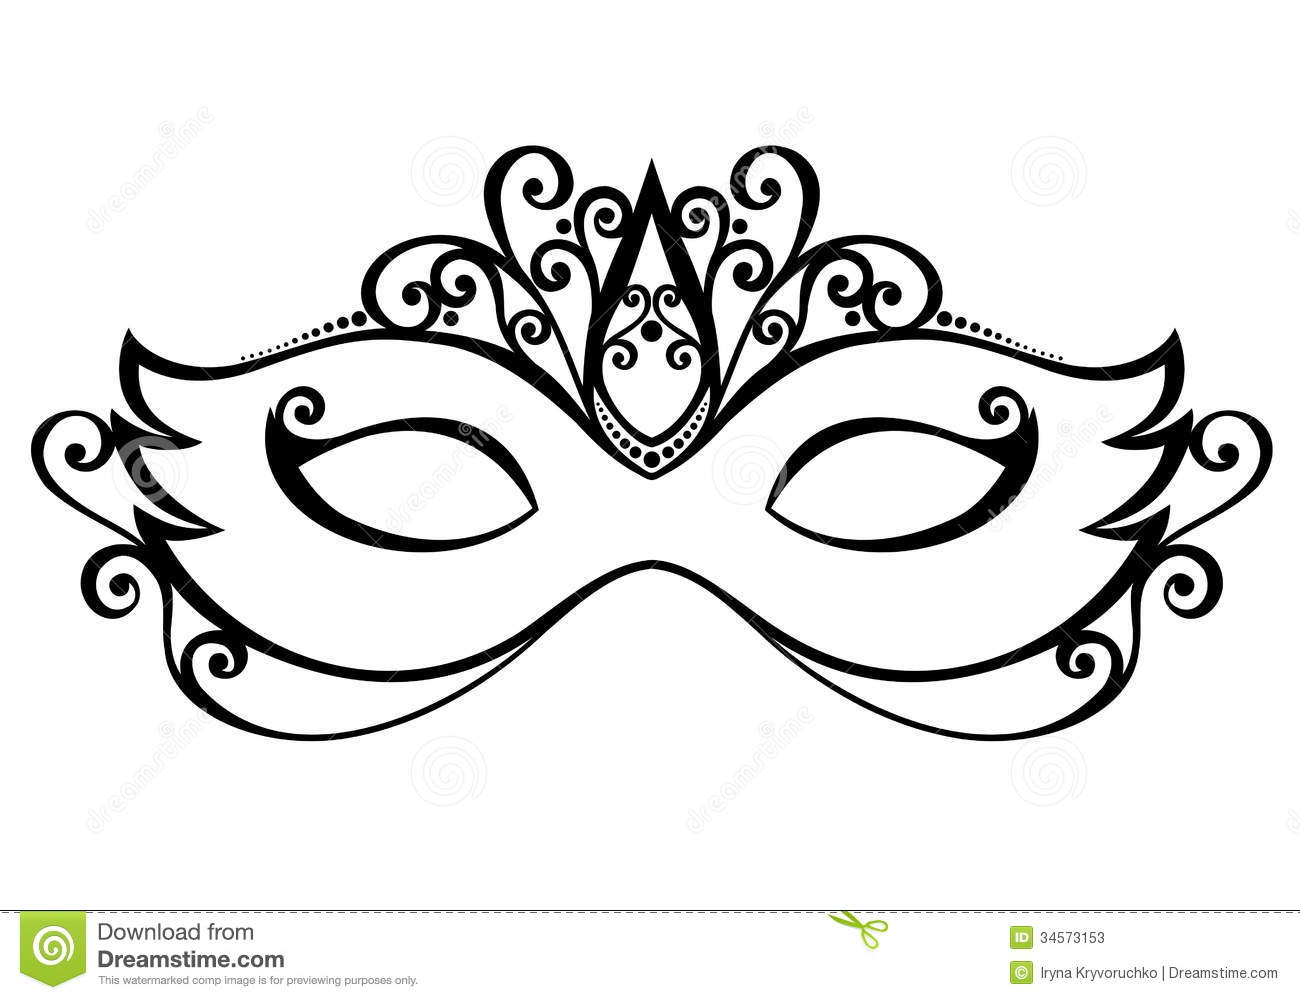 Carneval clipart venetian mask Image And form White And